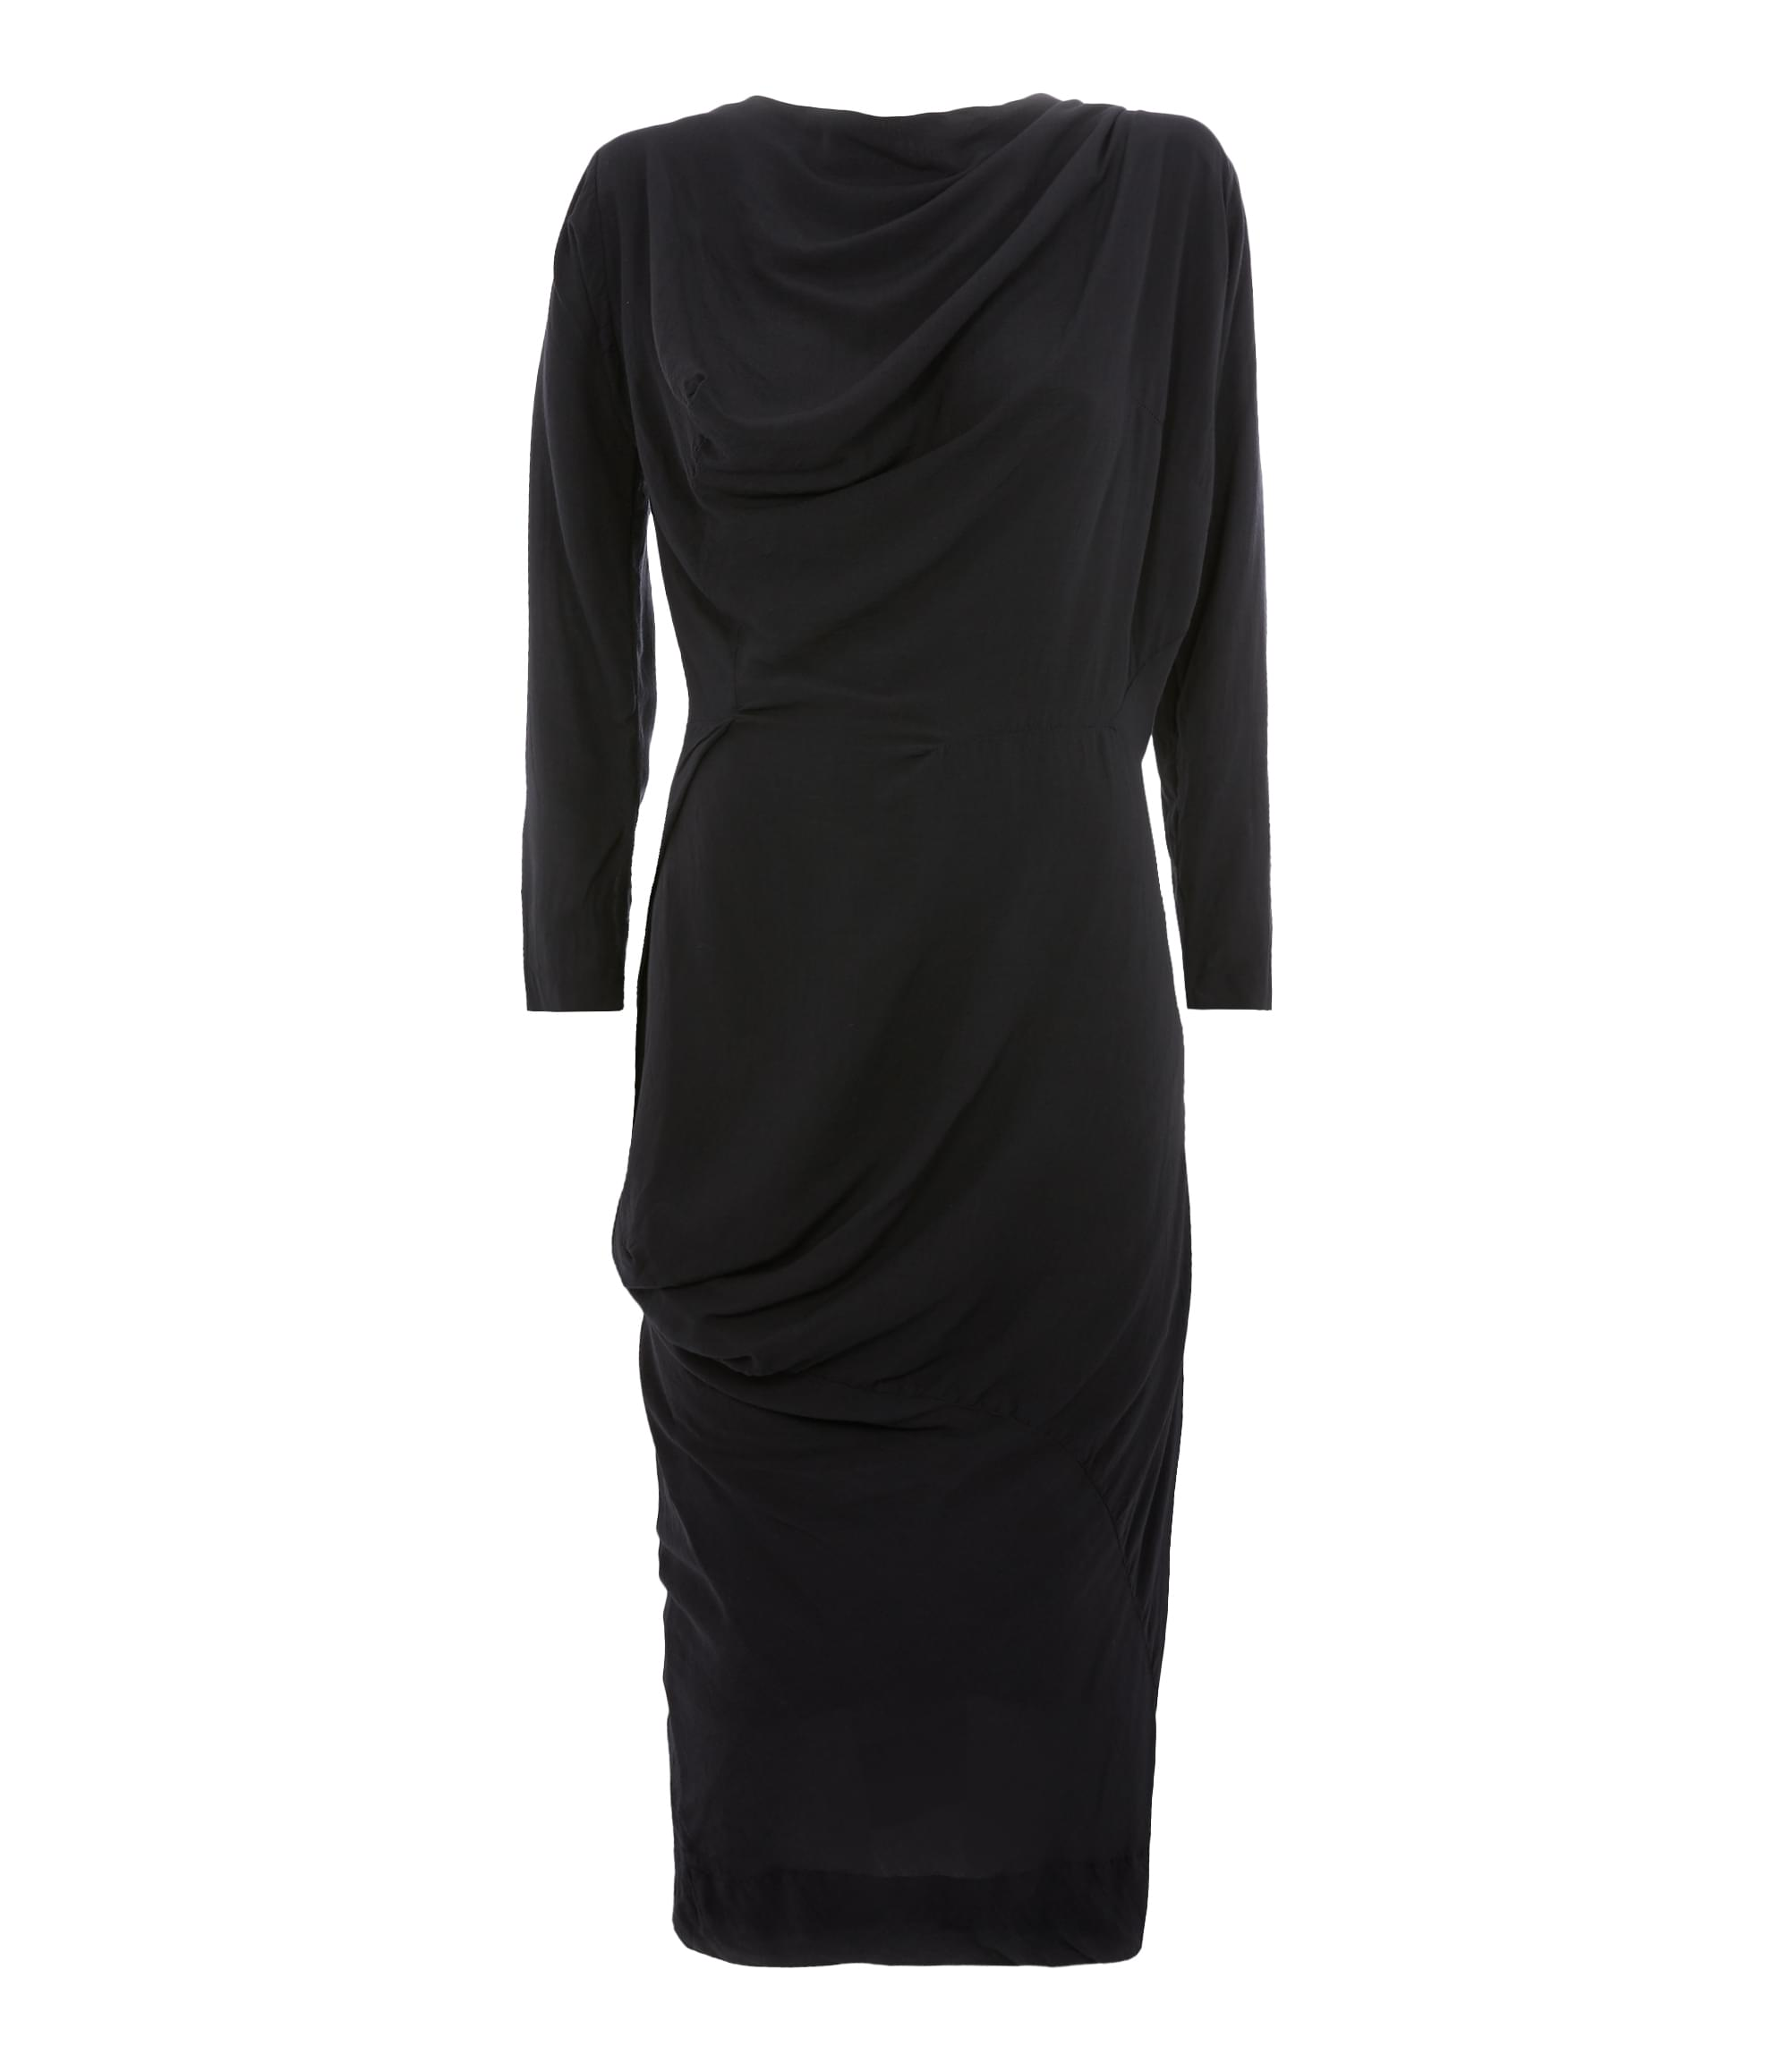 Vivienne Westwood New Fond Dress Black